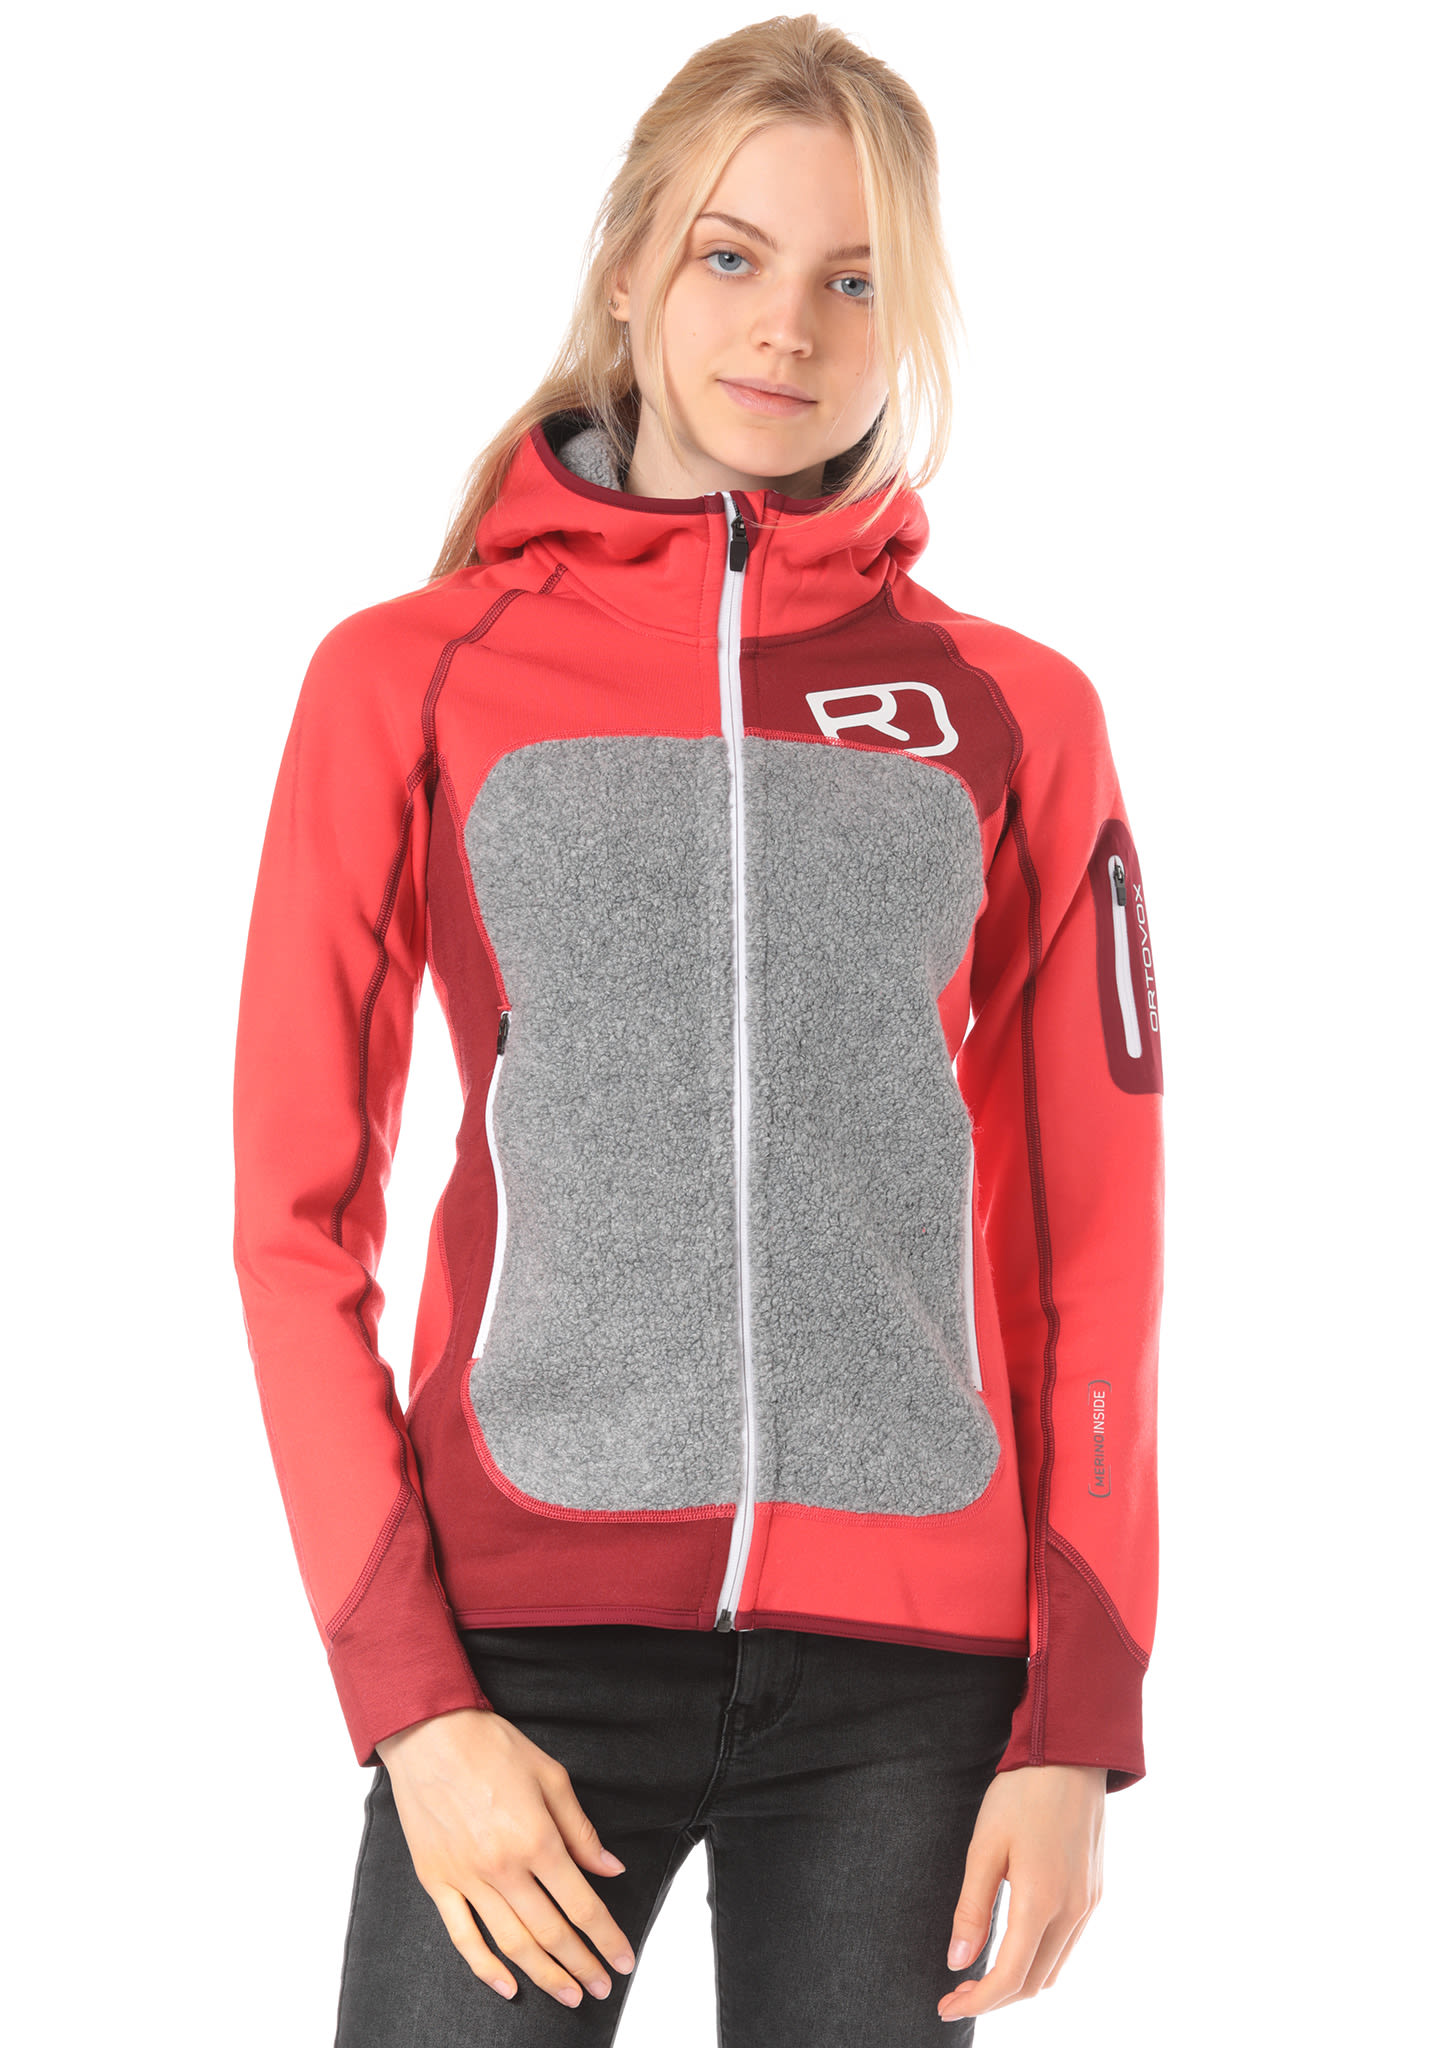 Pour Veste Polaire Ortovox Femme Planet Fleece Rouge Sports Plus 46qw4FI